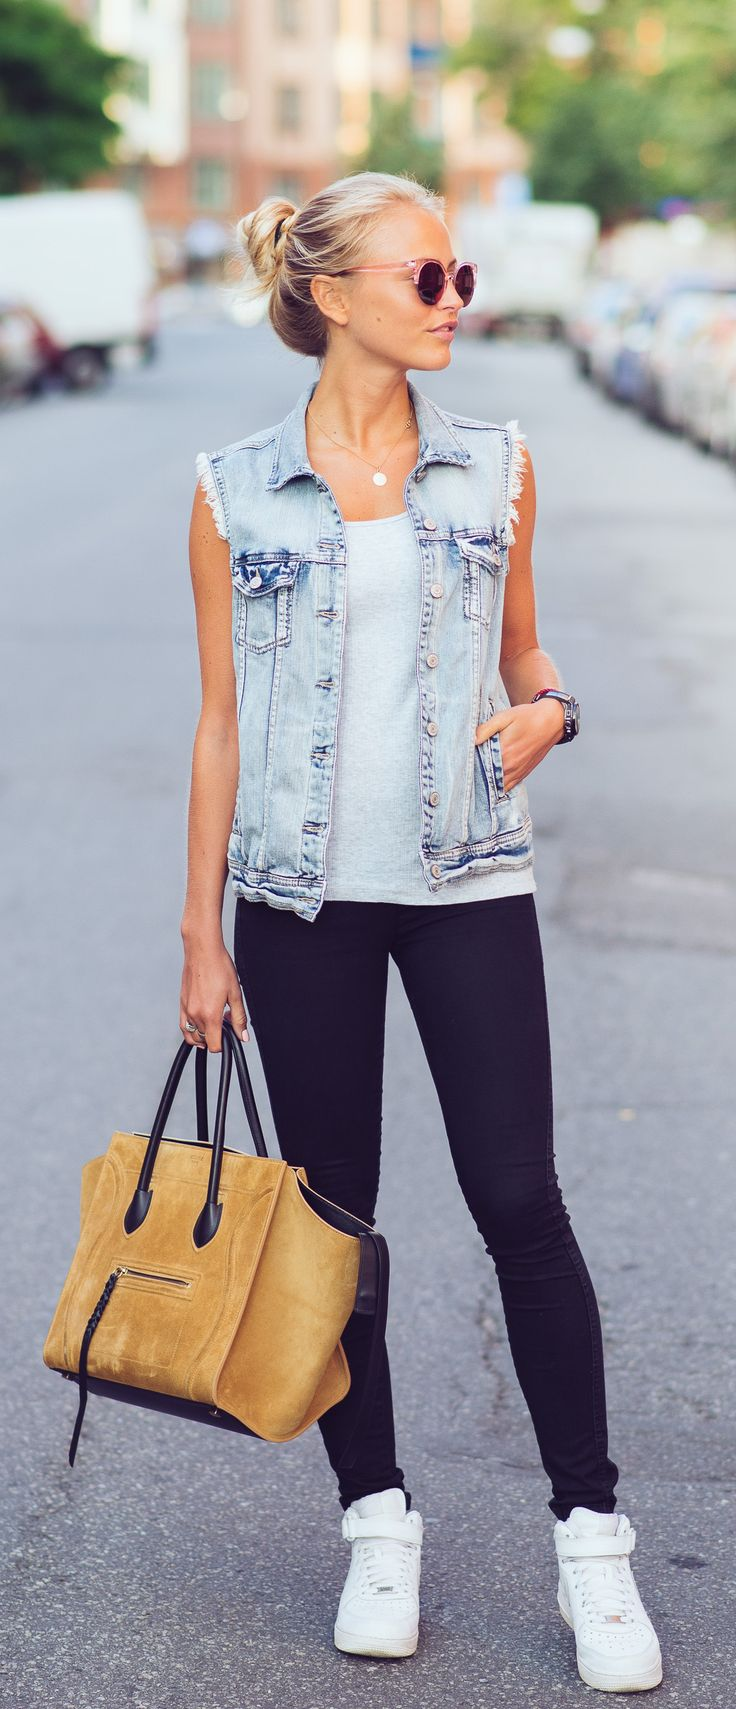 The Vest/Sleeveless Jacket - Essential For Autumn 2014 | Guia de estilo | Fashion, Style, Casual outfits